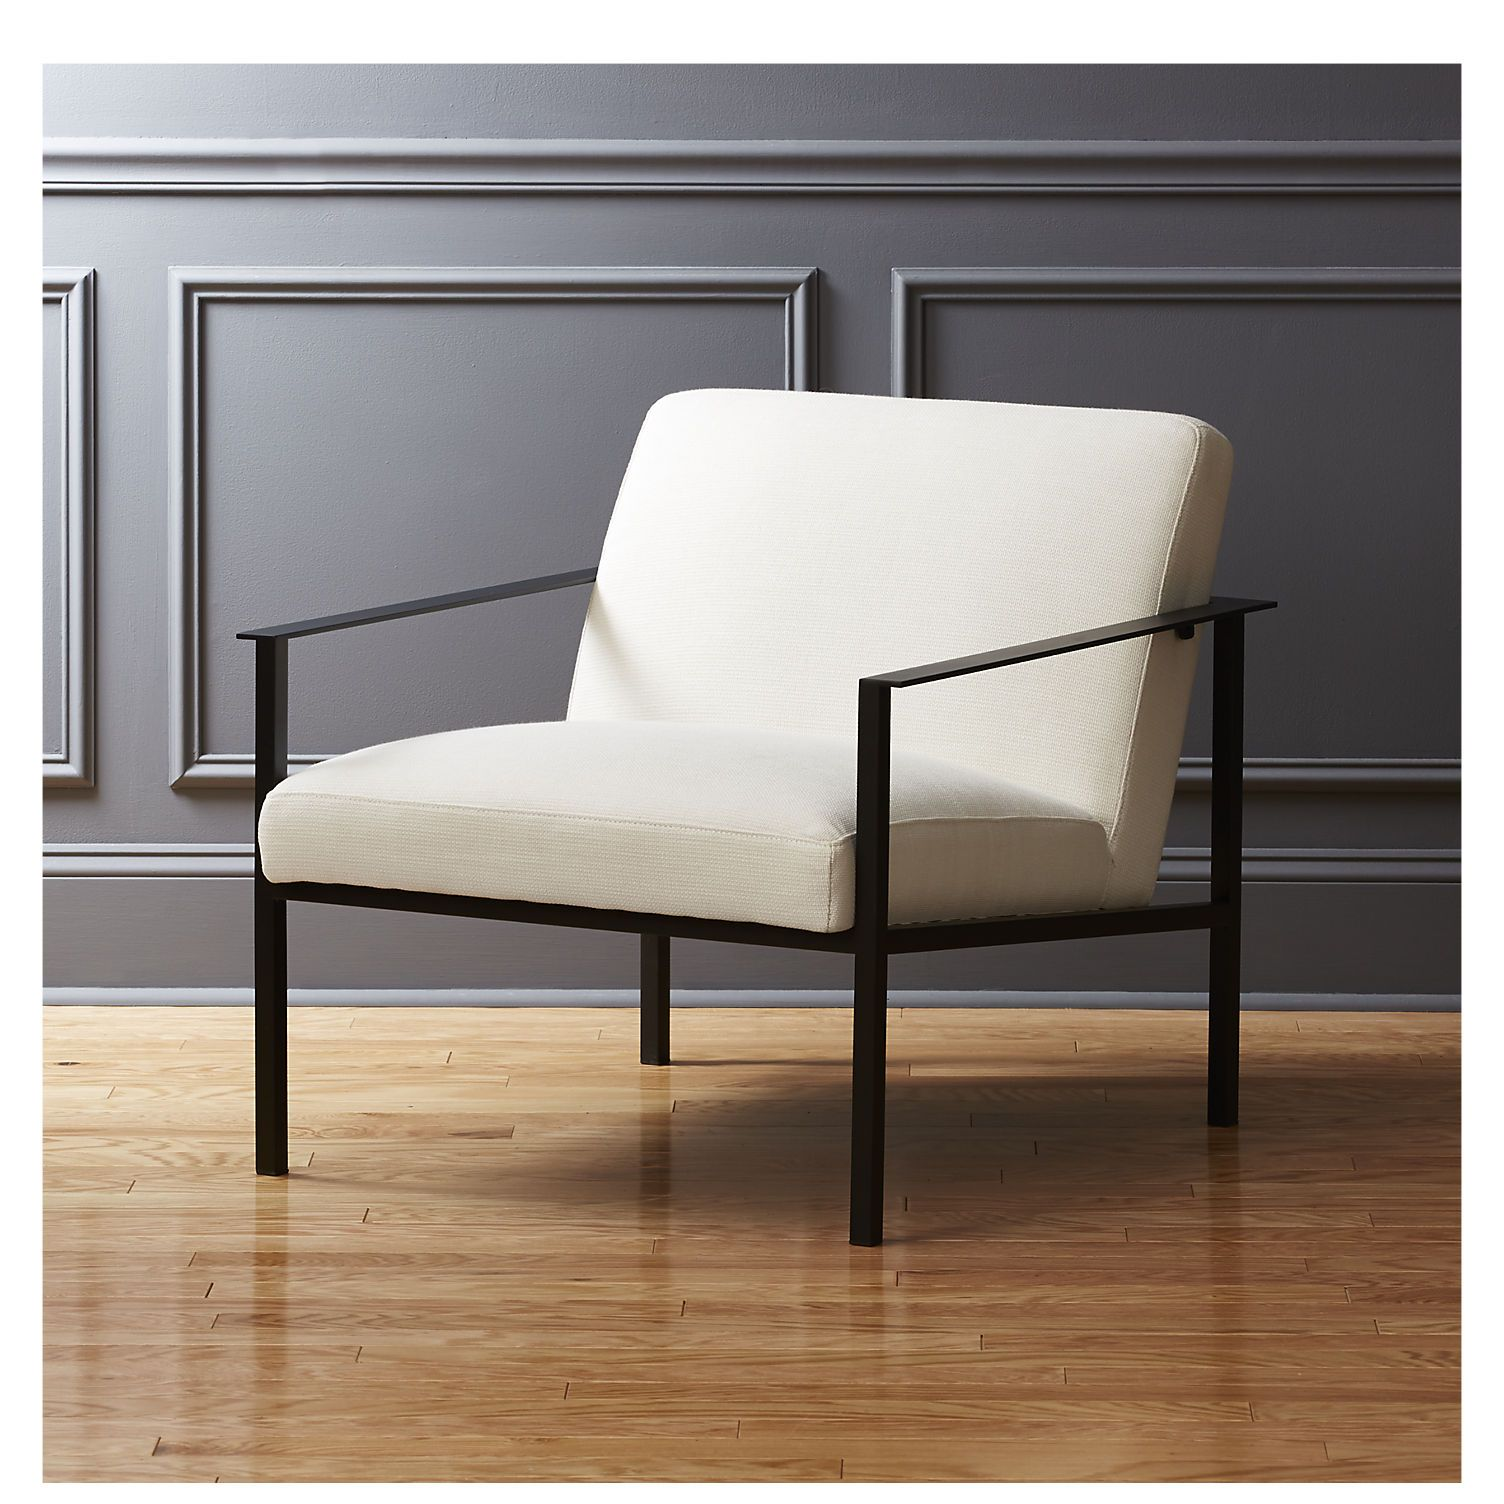 Cue White Chair Furniture, Chair, Living room designs